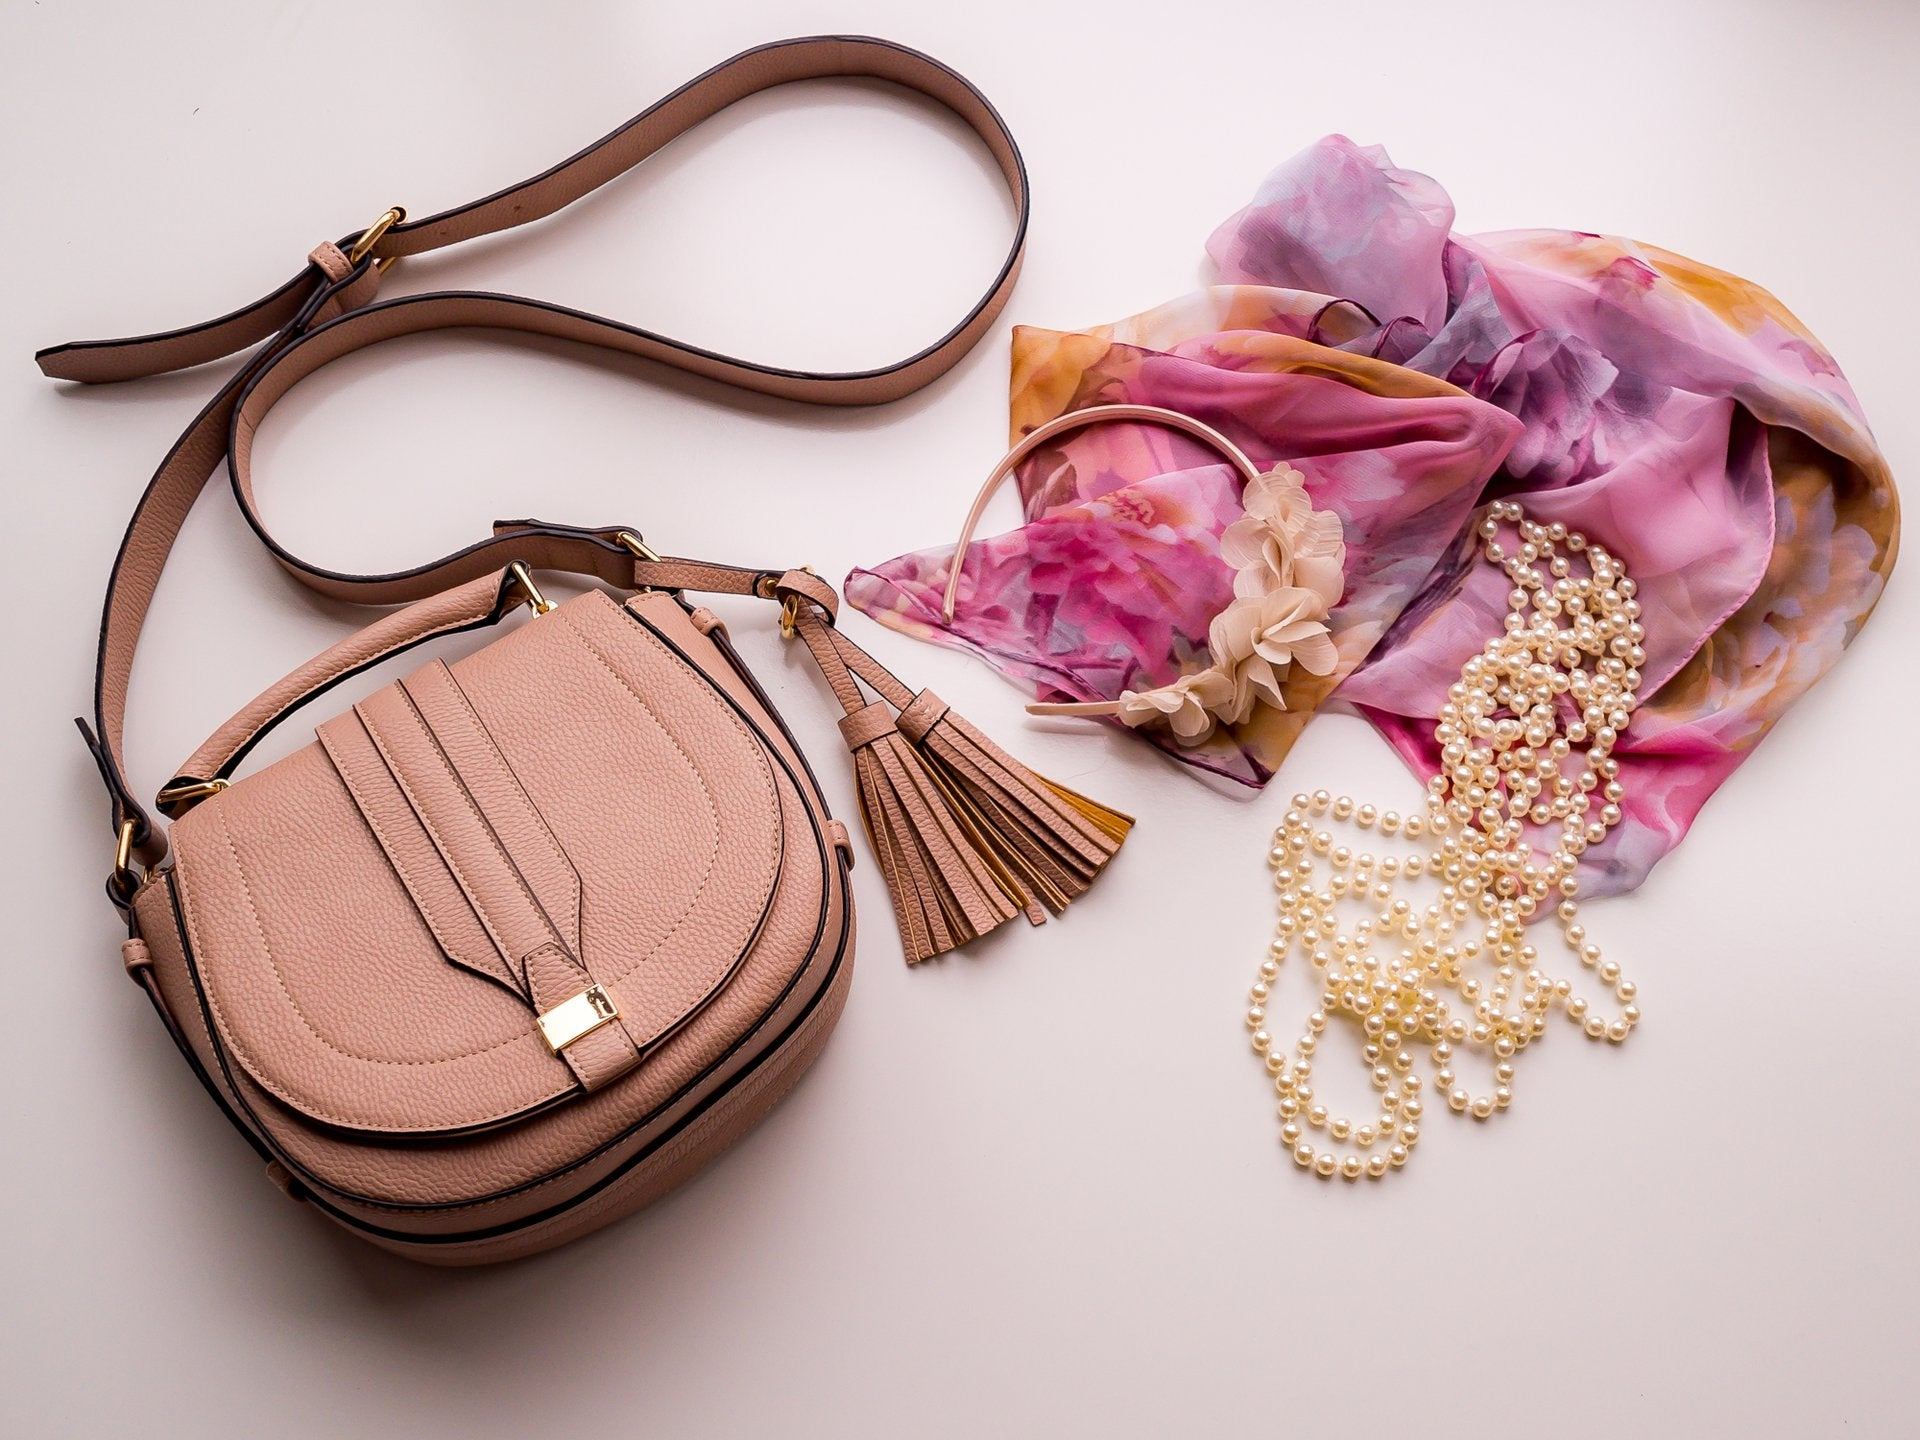 Australian brand handbags and accessories